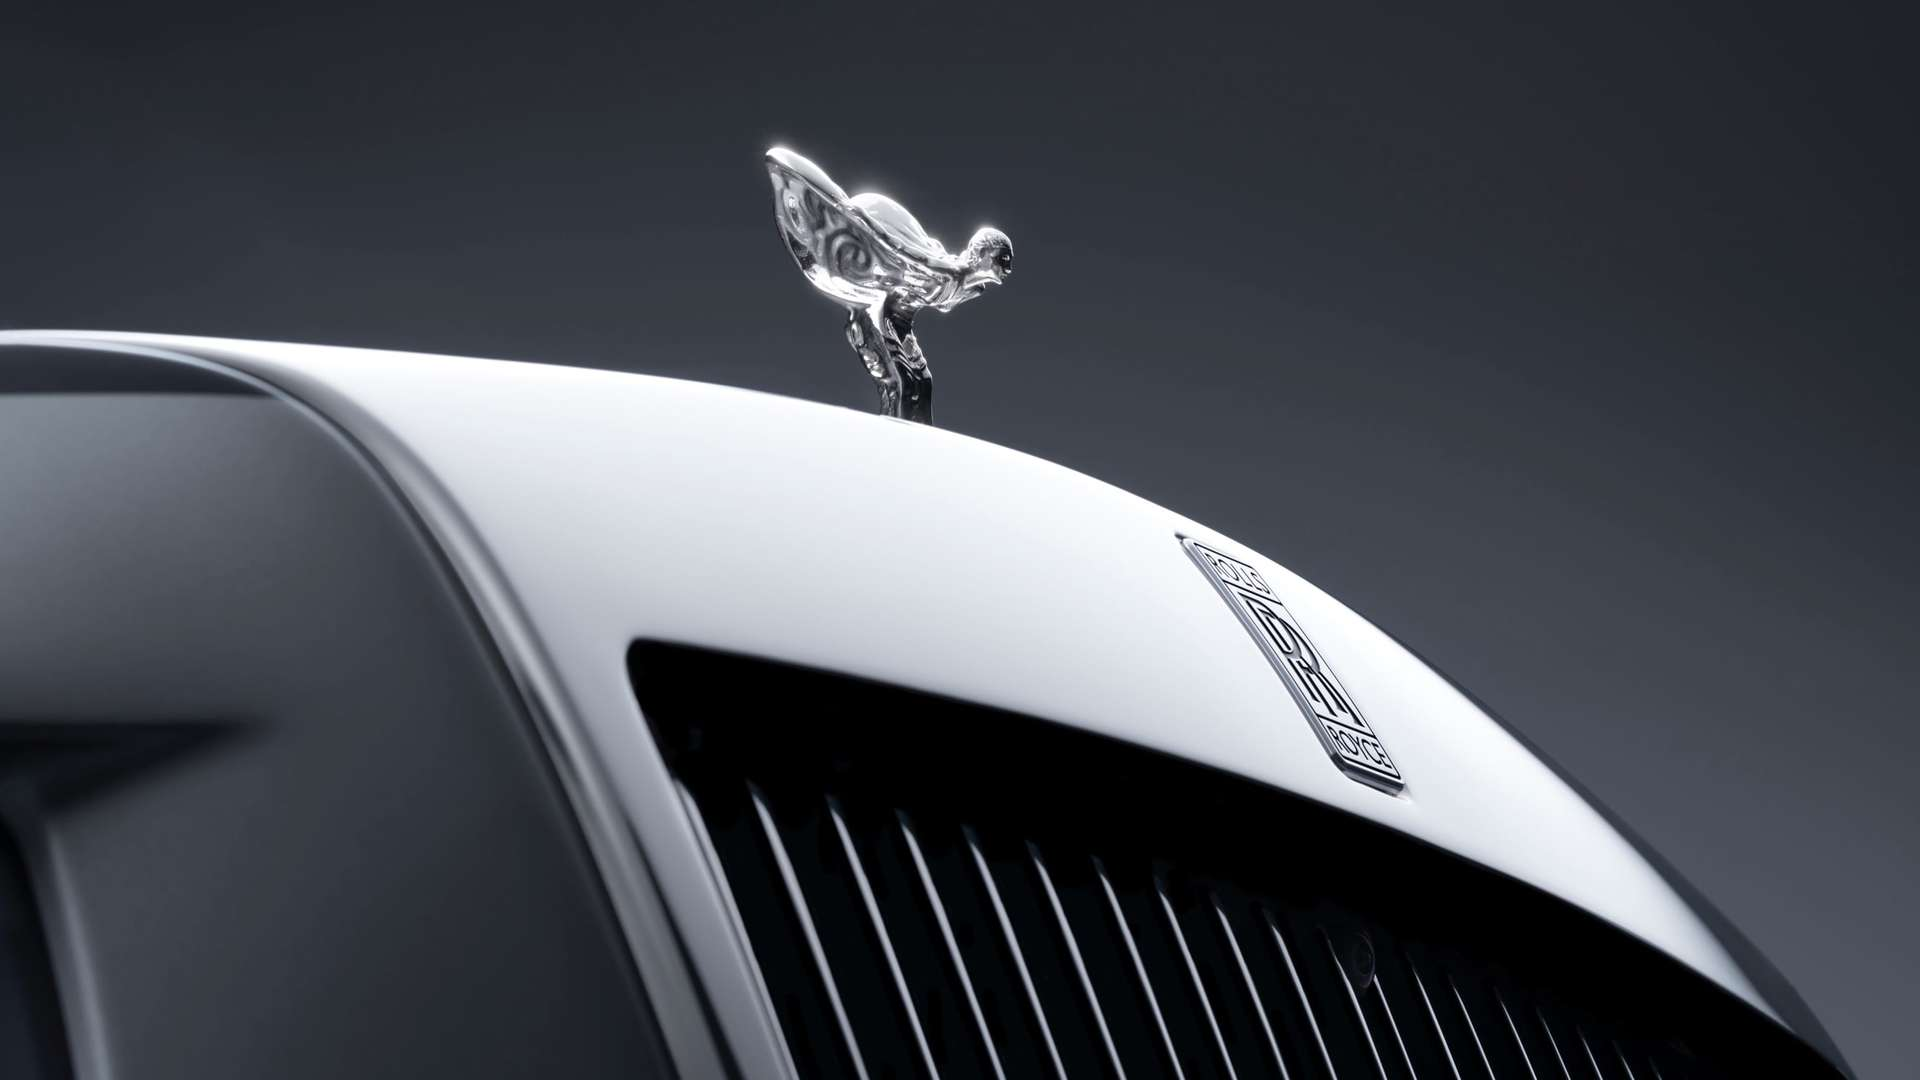 A close up of the Spirit of Ecstasy on the front of a Rolls-Royce Phantom Motor Car